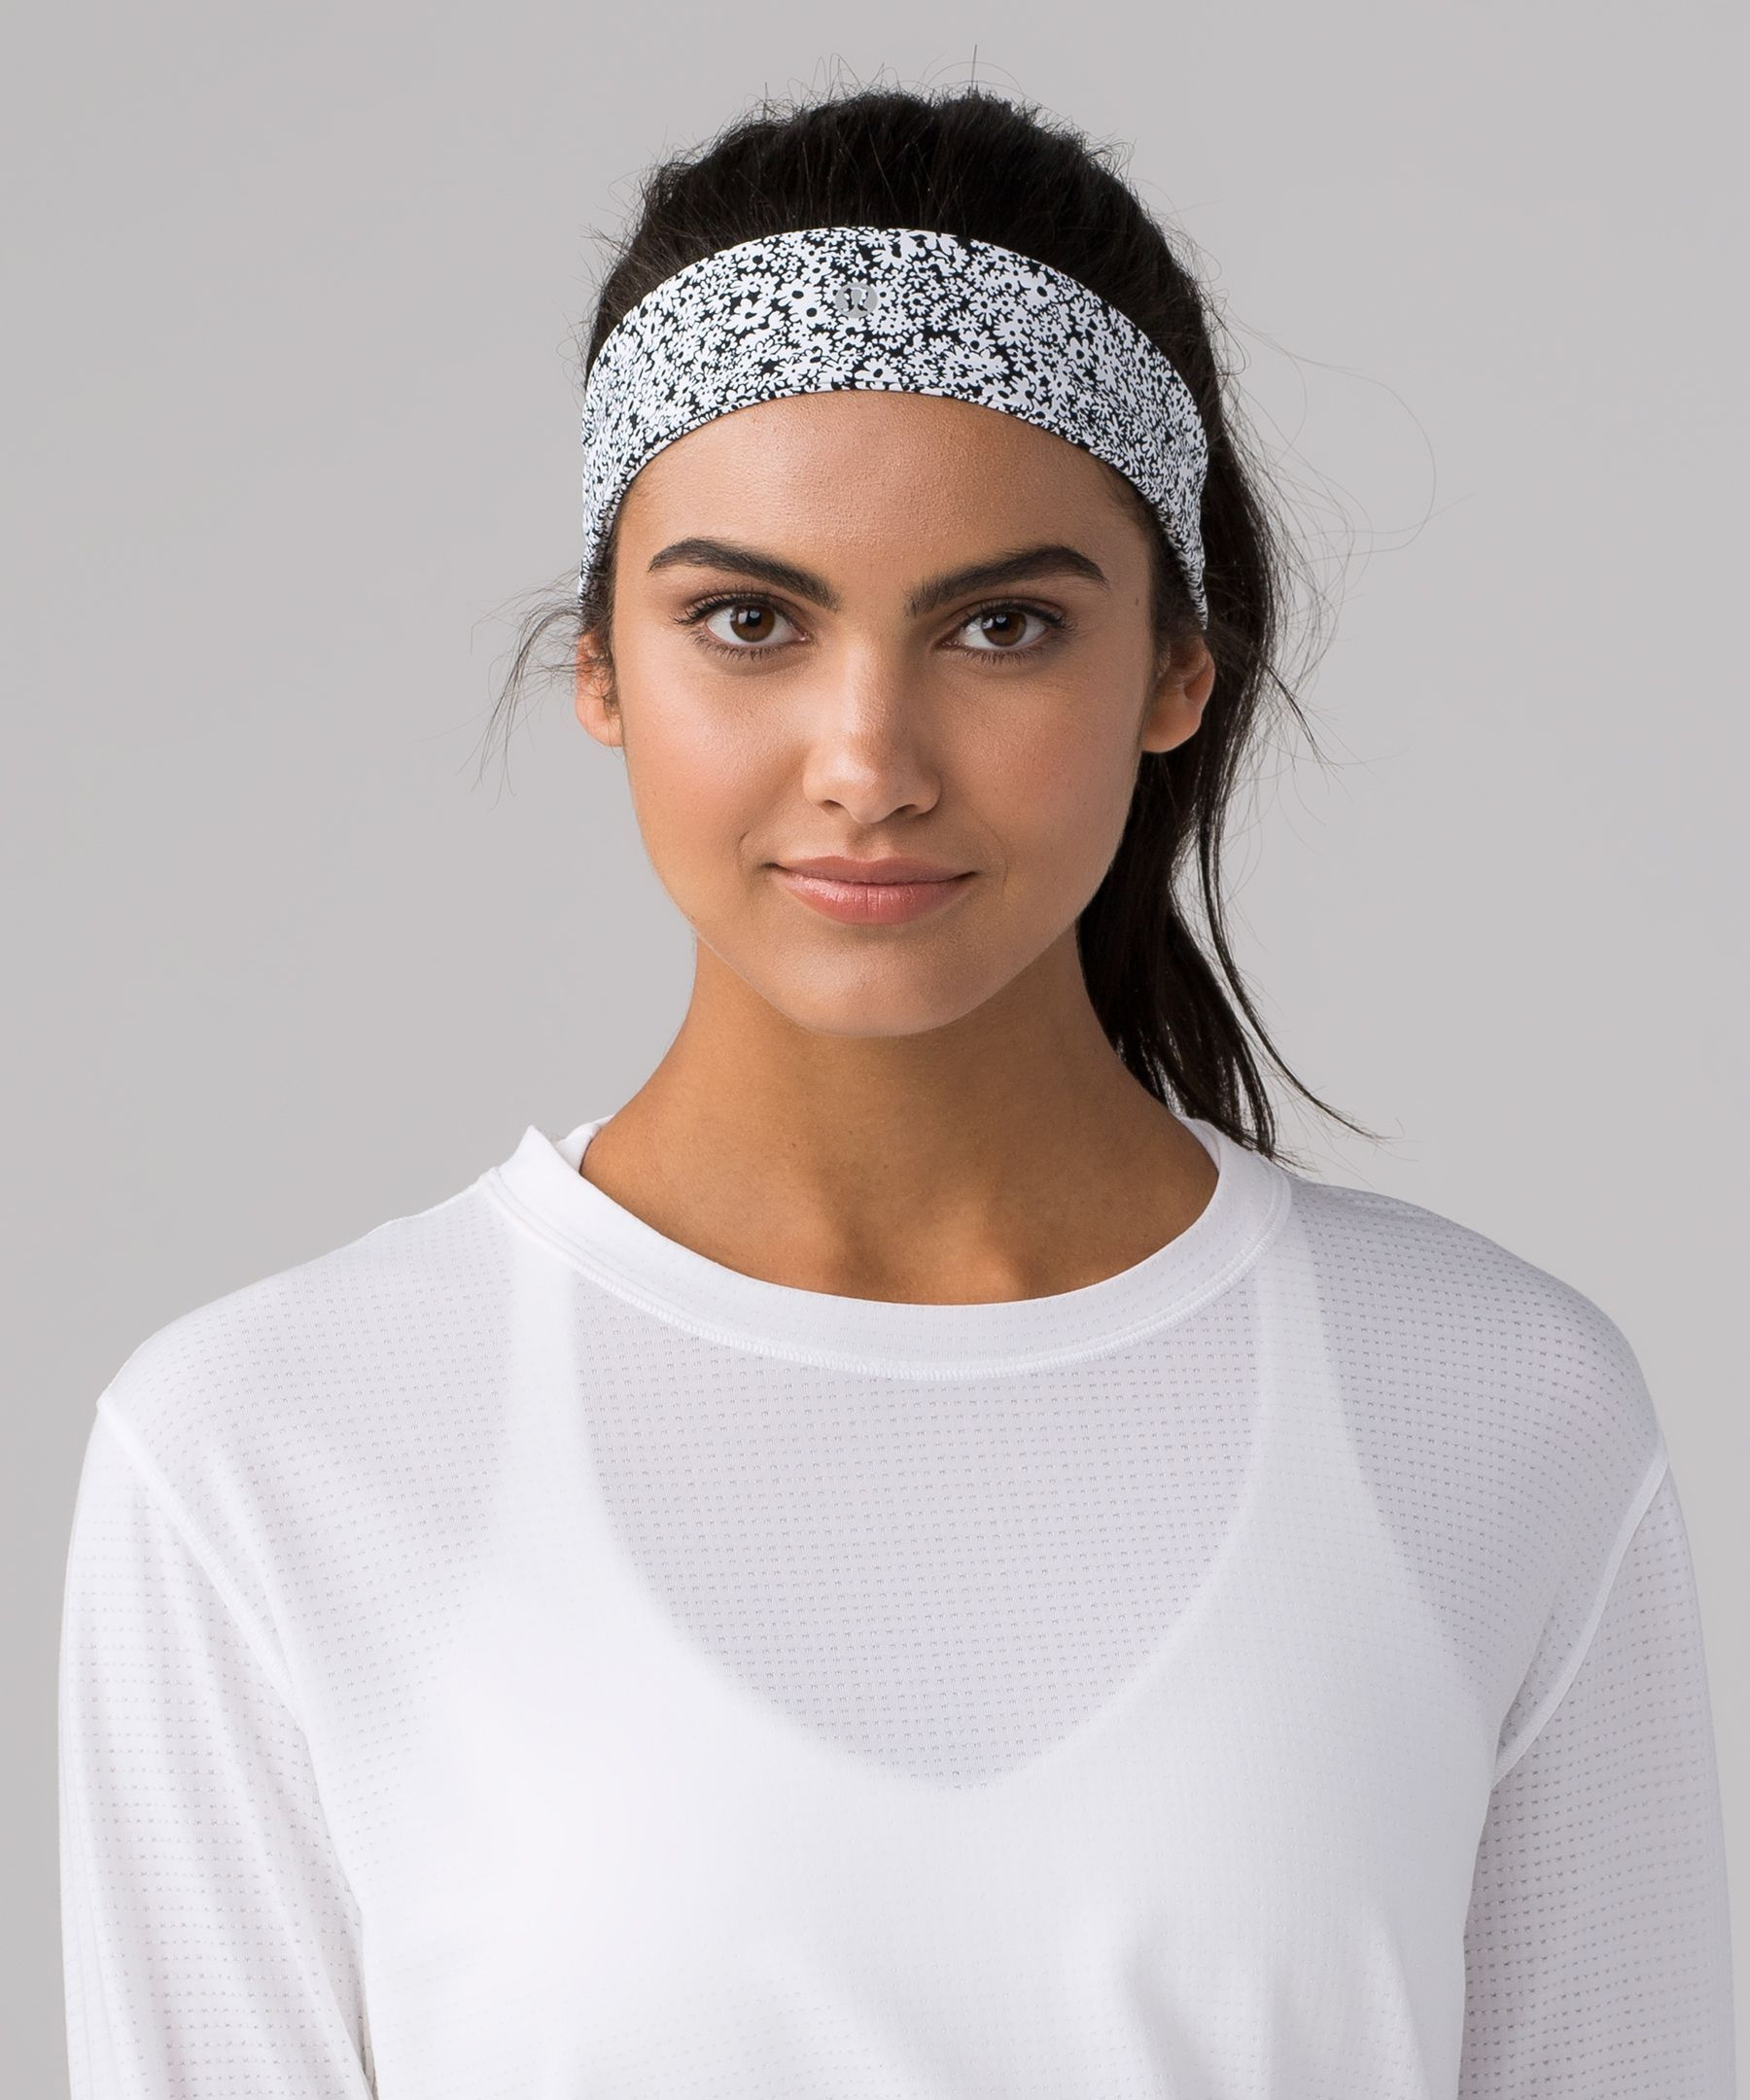 01b7d4f633b Fly Away Tamer Headband II Luxtreme | Products | Headbands ...